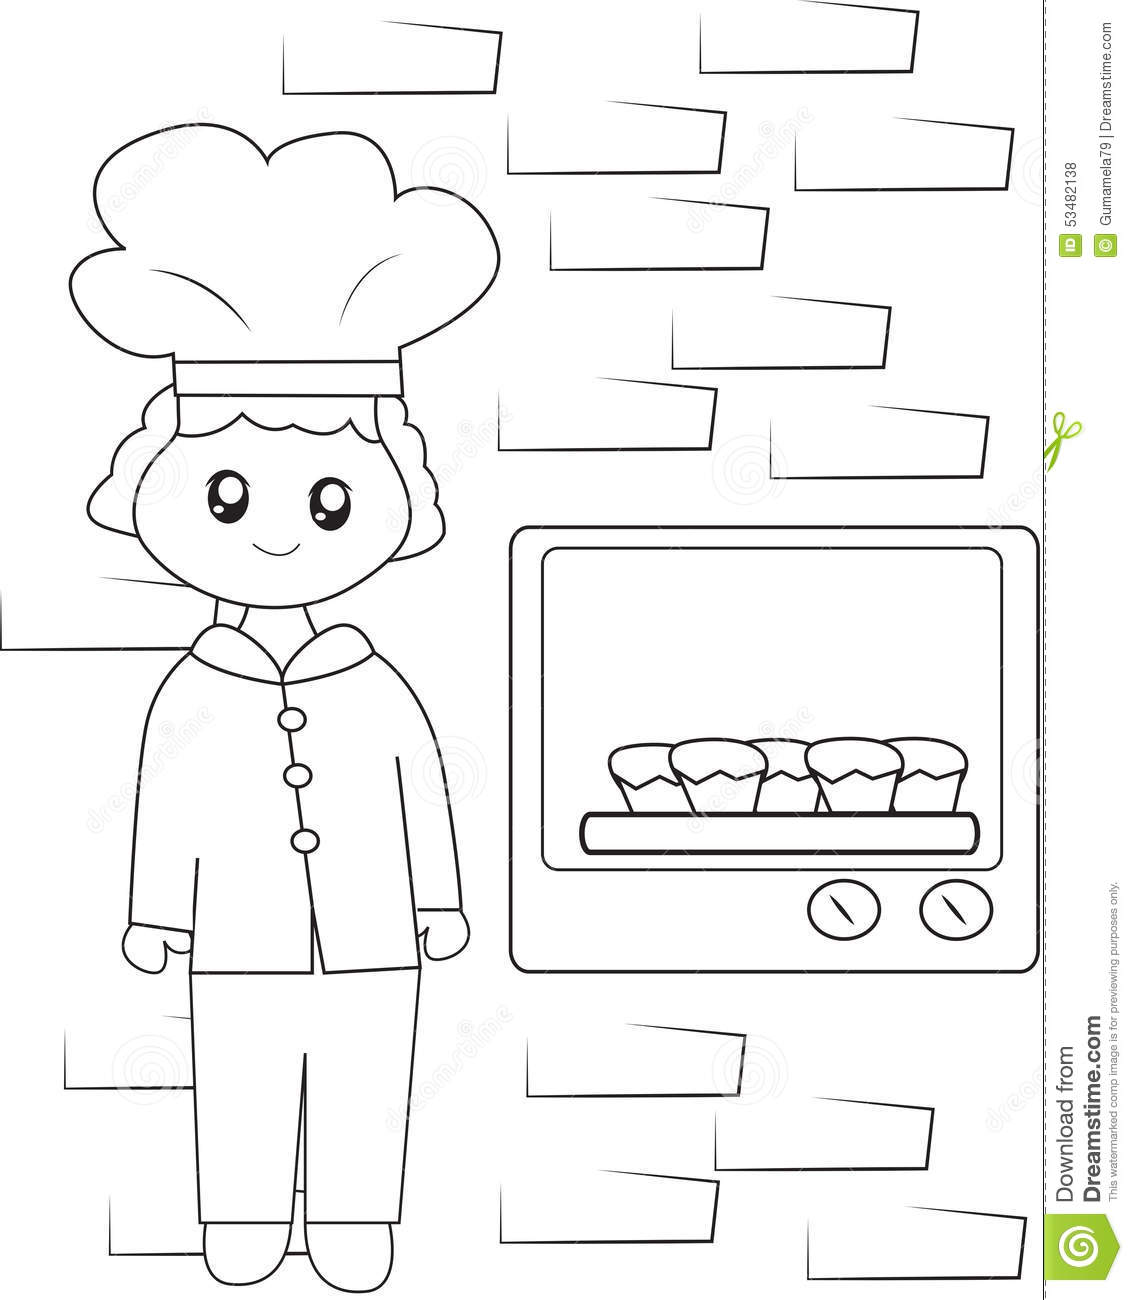 the chef baking cupcakes coloring page stock illustration image